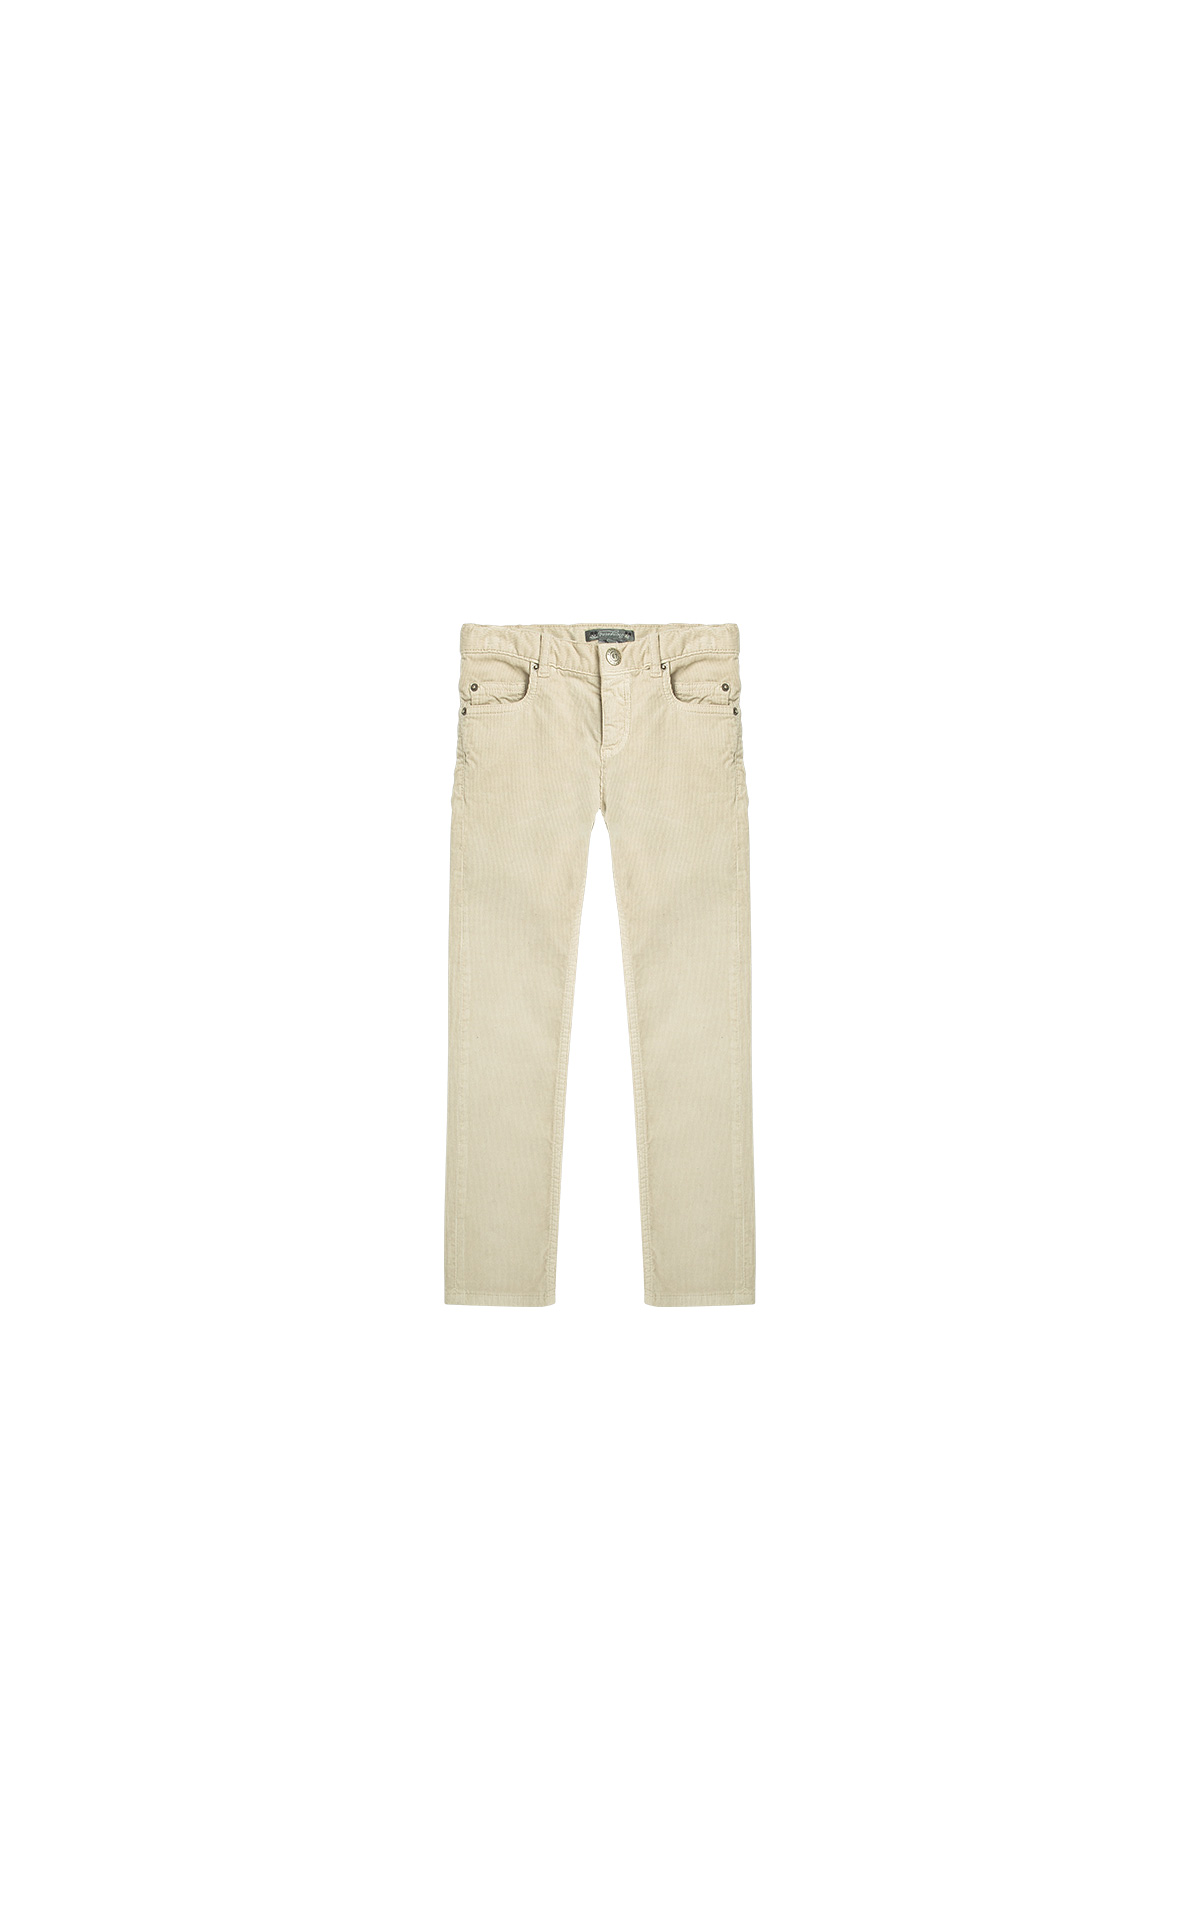 Bonpoint Boy's beige trousers | La Vallée Village